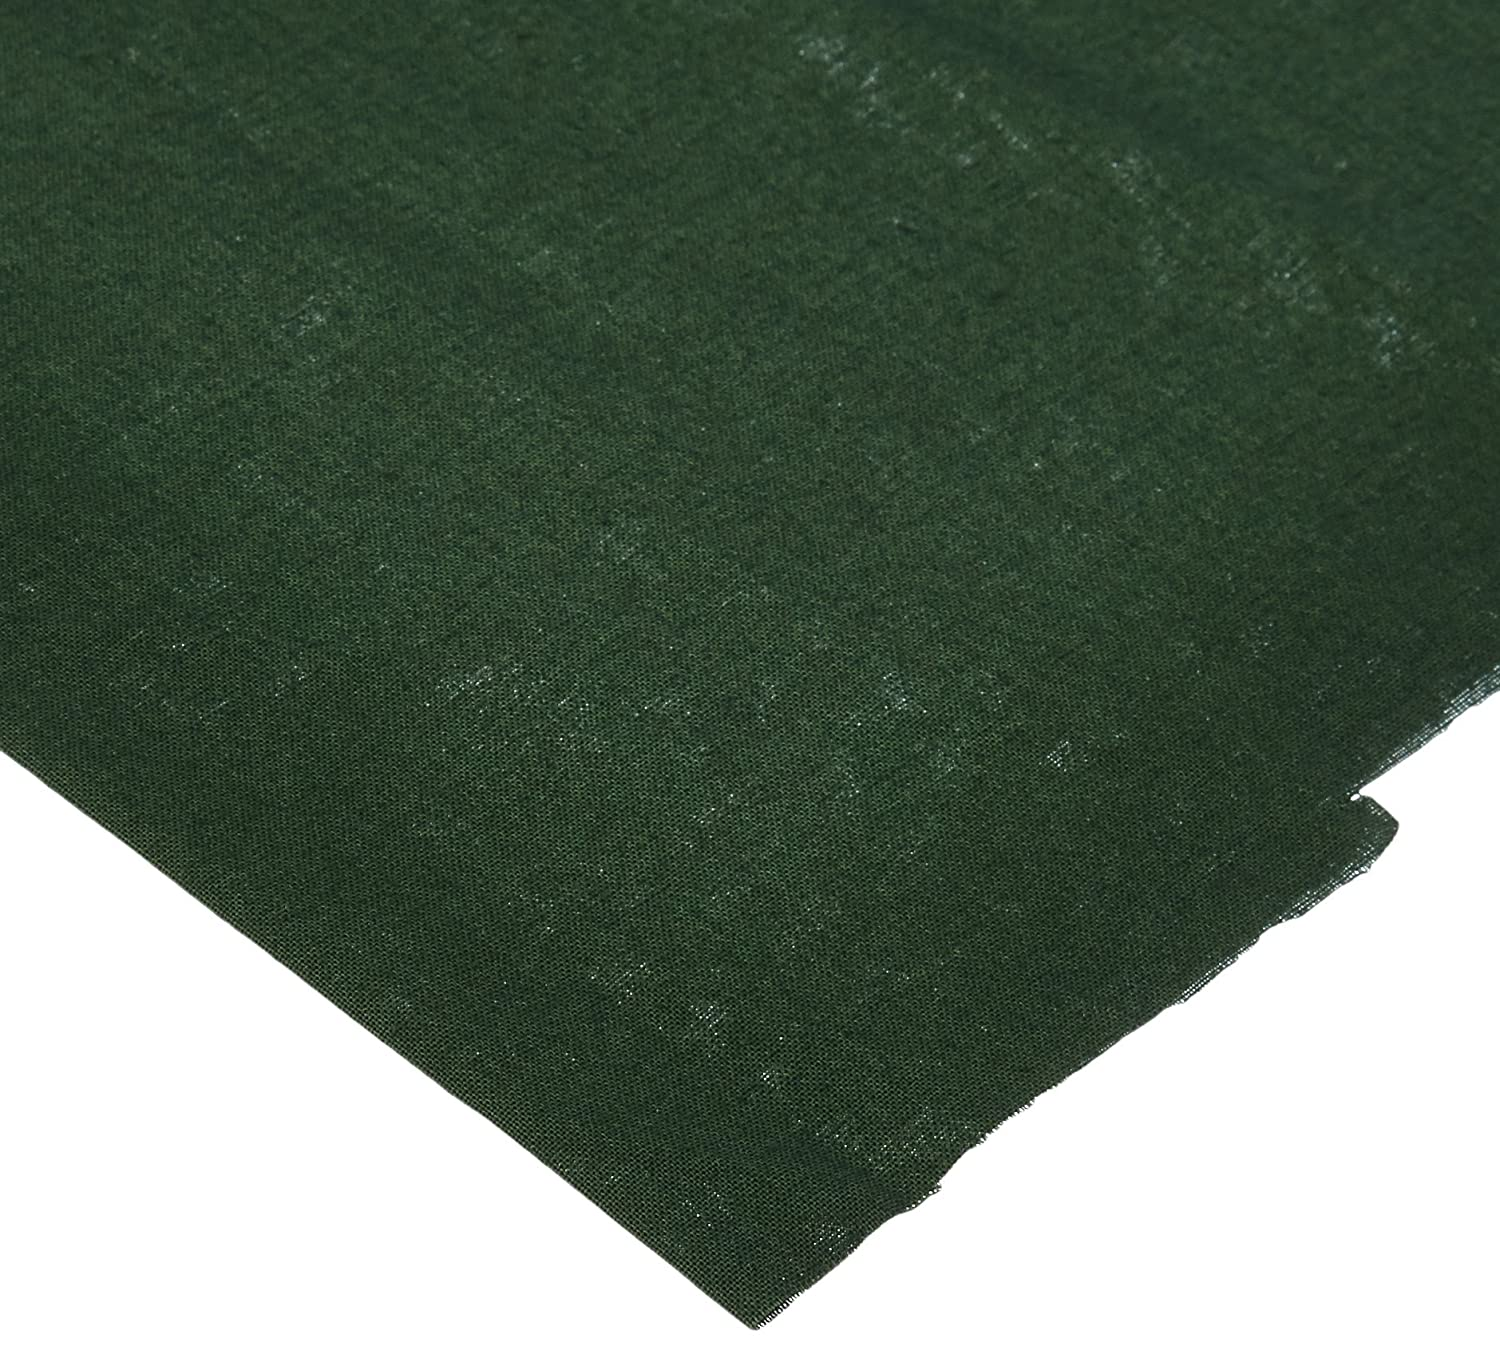 Richlin Fabrics ALL COTT-BC150 Harvest Broadcloth Solid 44 in. Wide 100 Percent Cotton D-R-Amish Green - 20 Yards   B002PNVDHE